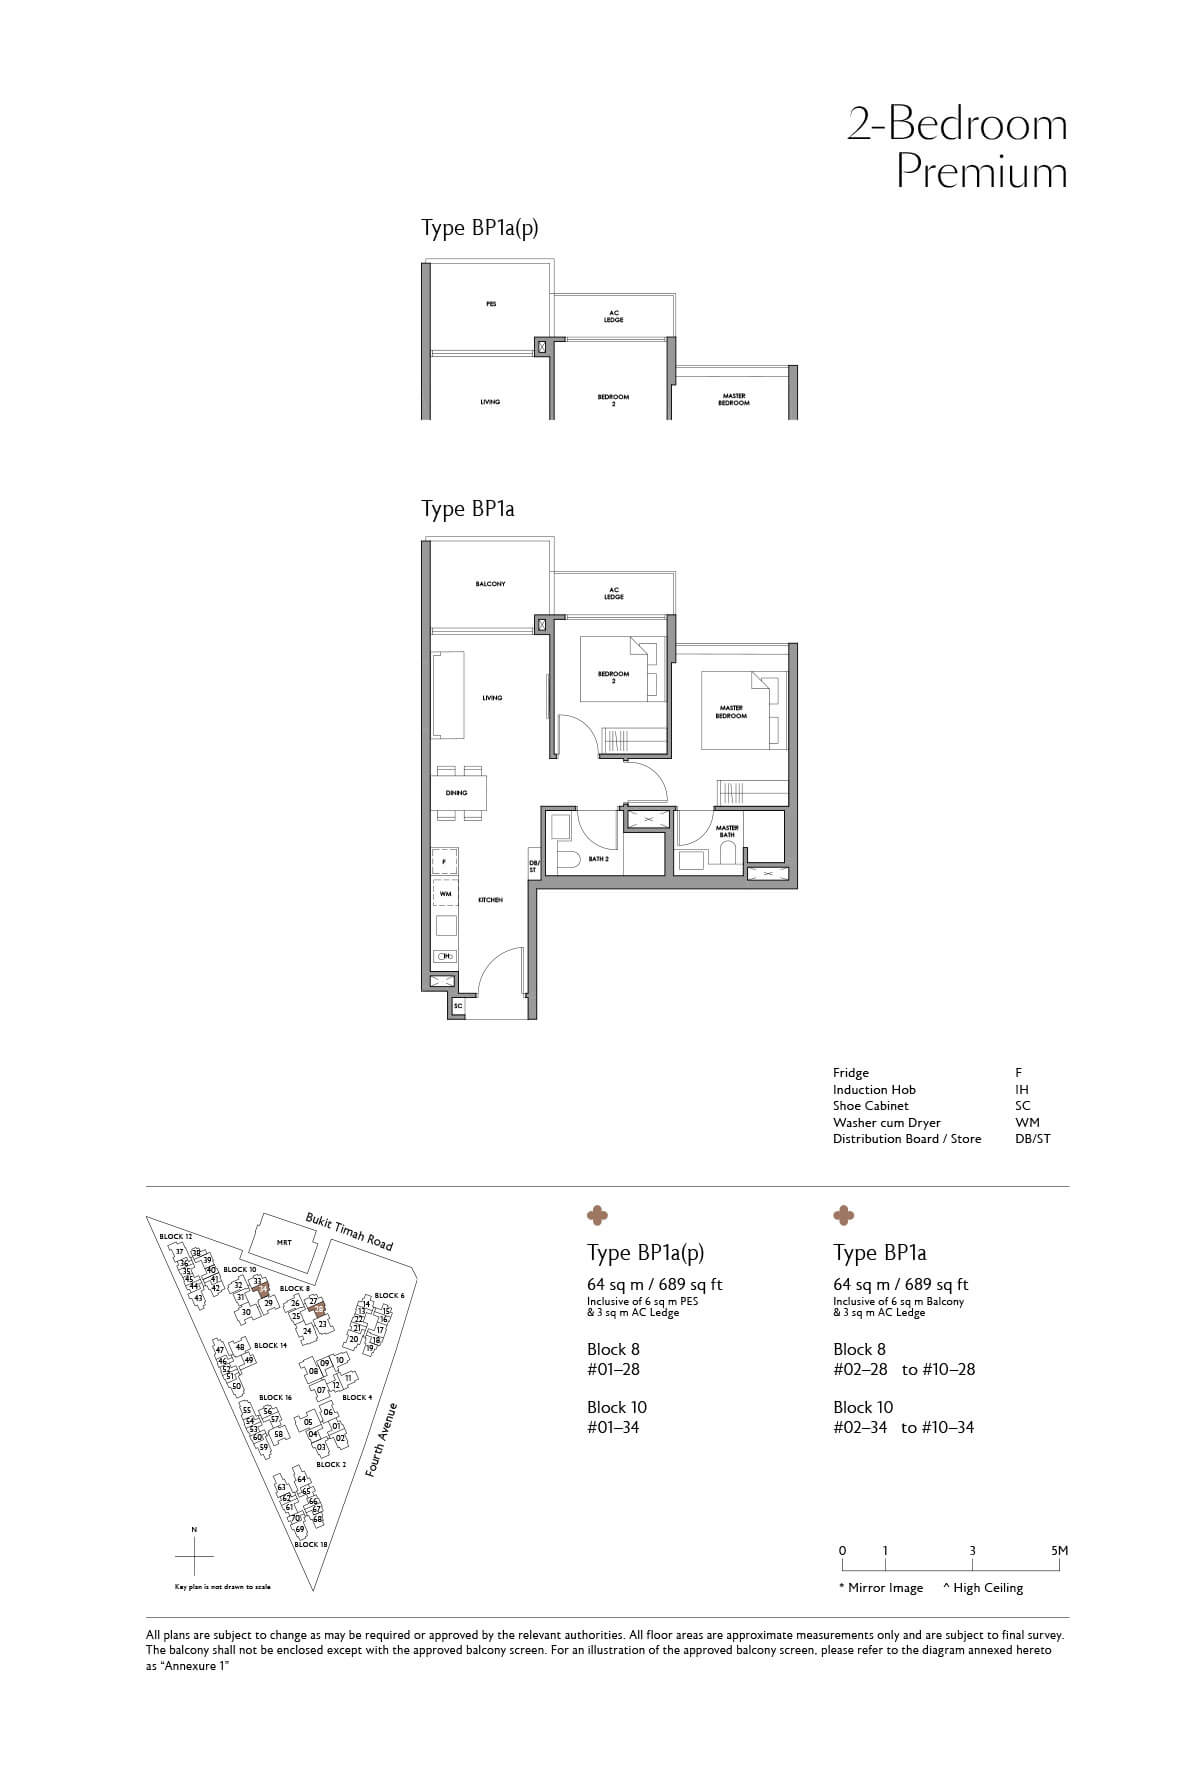 Fourth Avenue Residences Floor Plan 2 Bedroom Premium Type BP1a